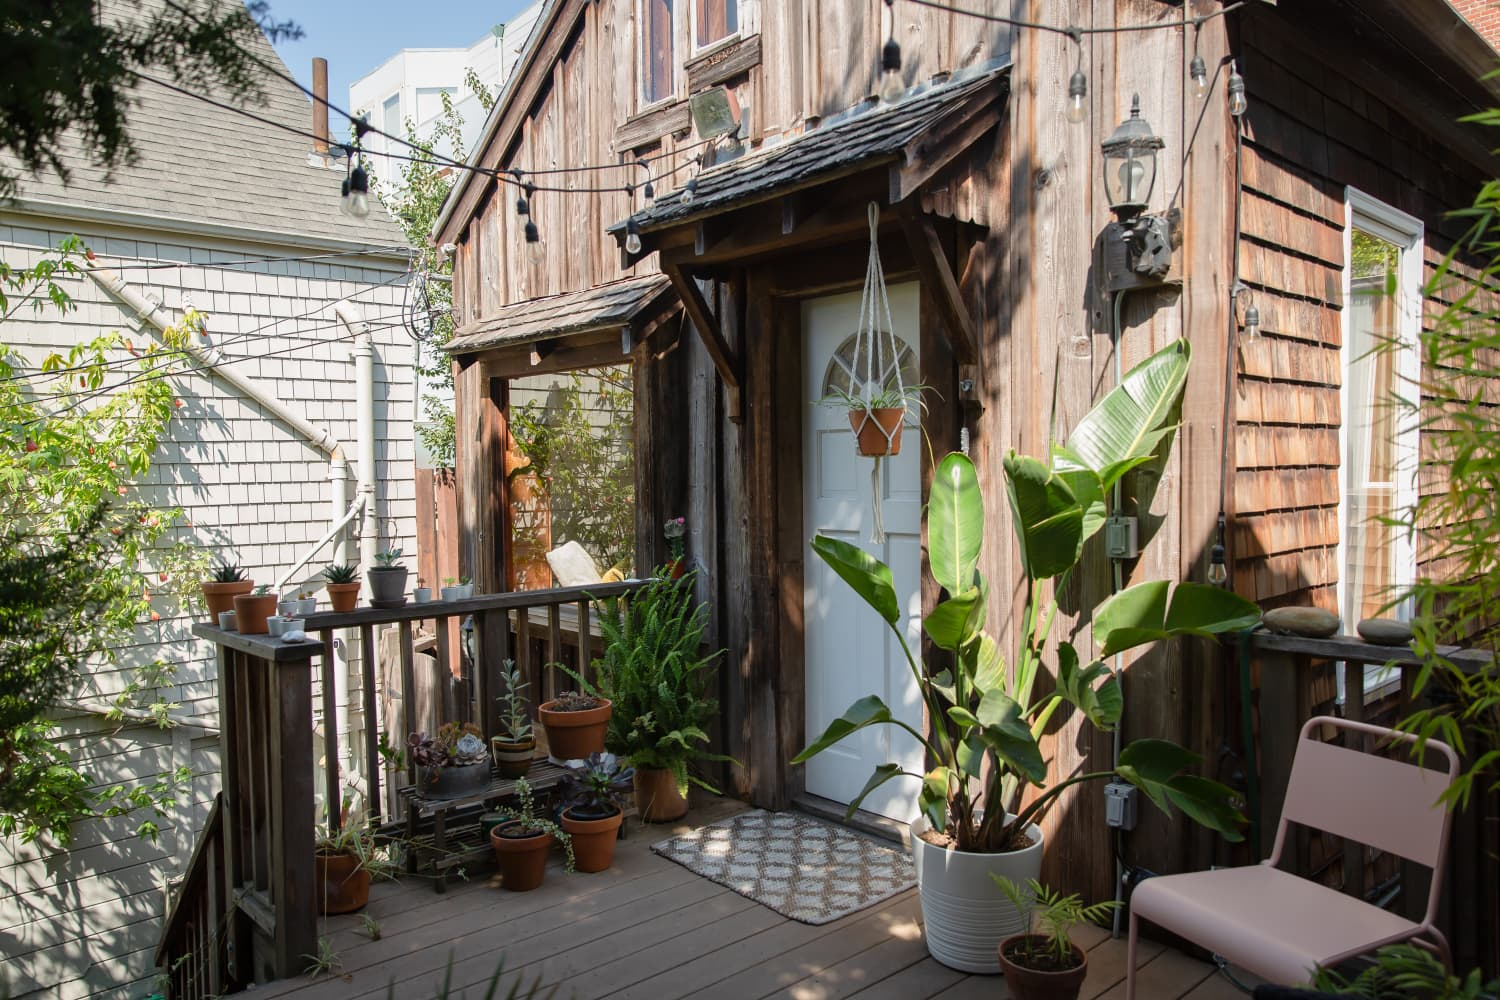 This Small San Francisco Cottage Has the Dreamiest, Woodiest Bathroom